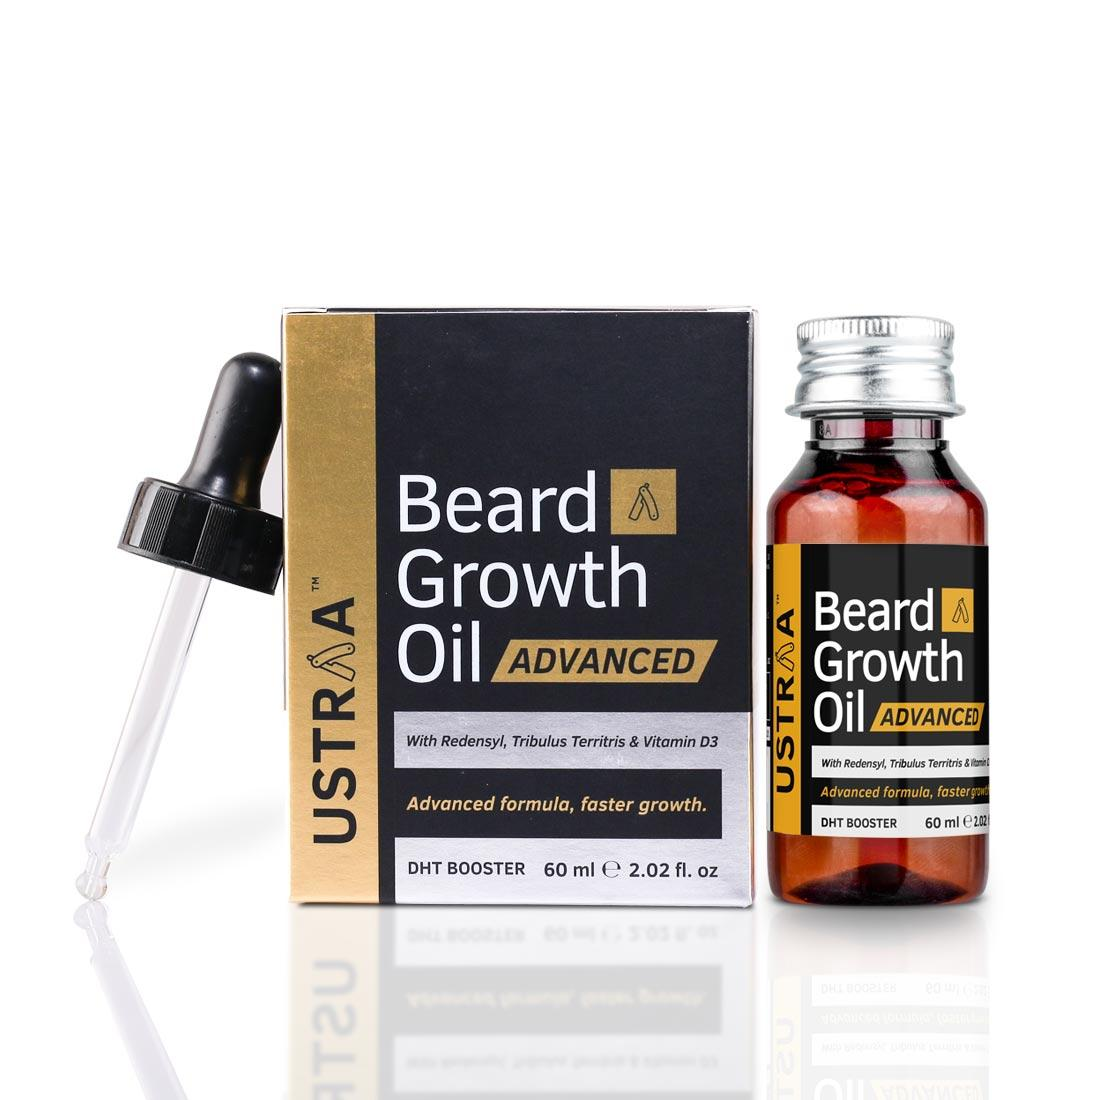 Ustraa Beard Growth Oil Advanced - Beard Oil for Patchy Beard Growth, With Redensyl and Testosterone Boosters, 60ml